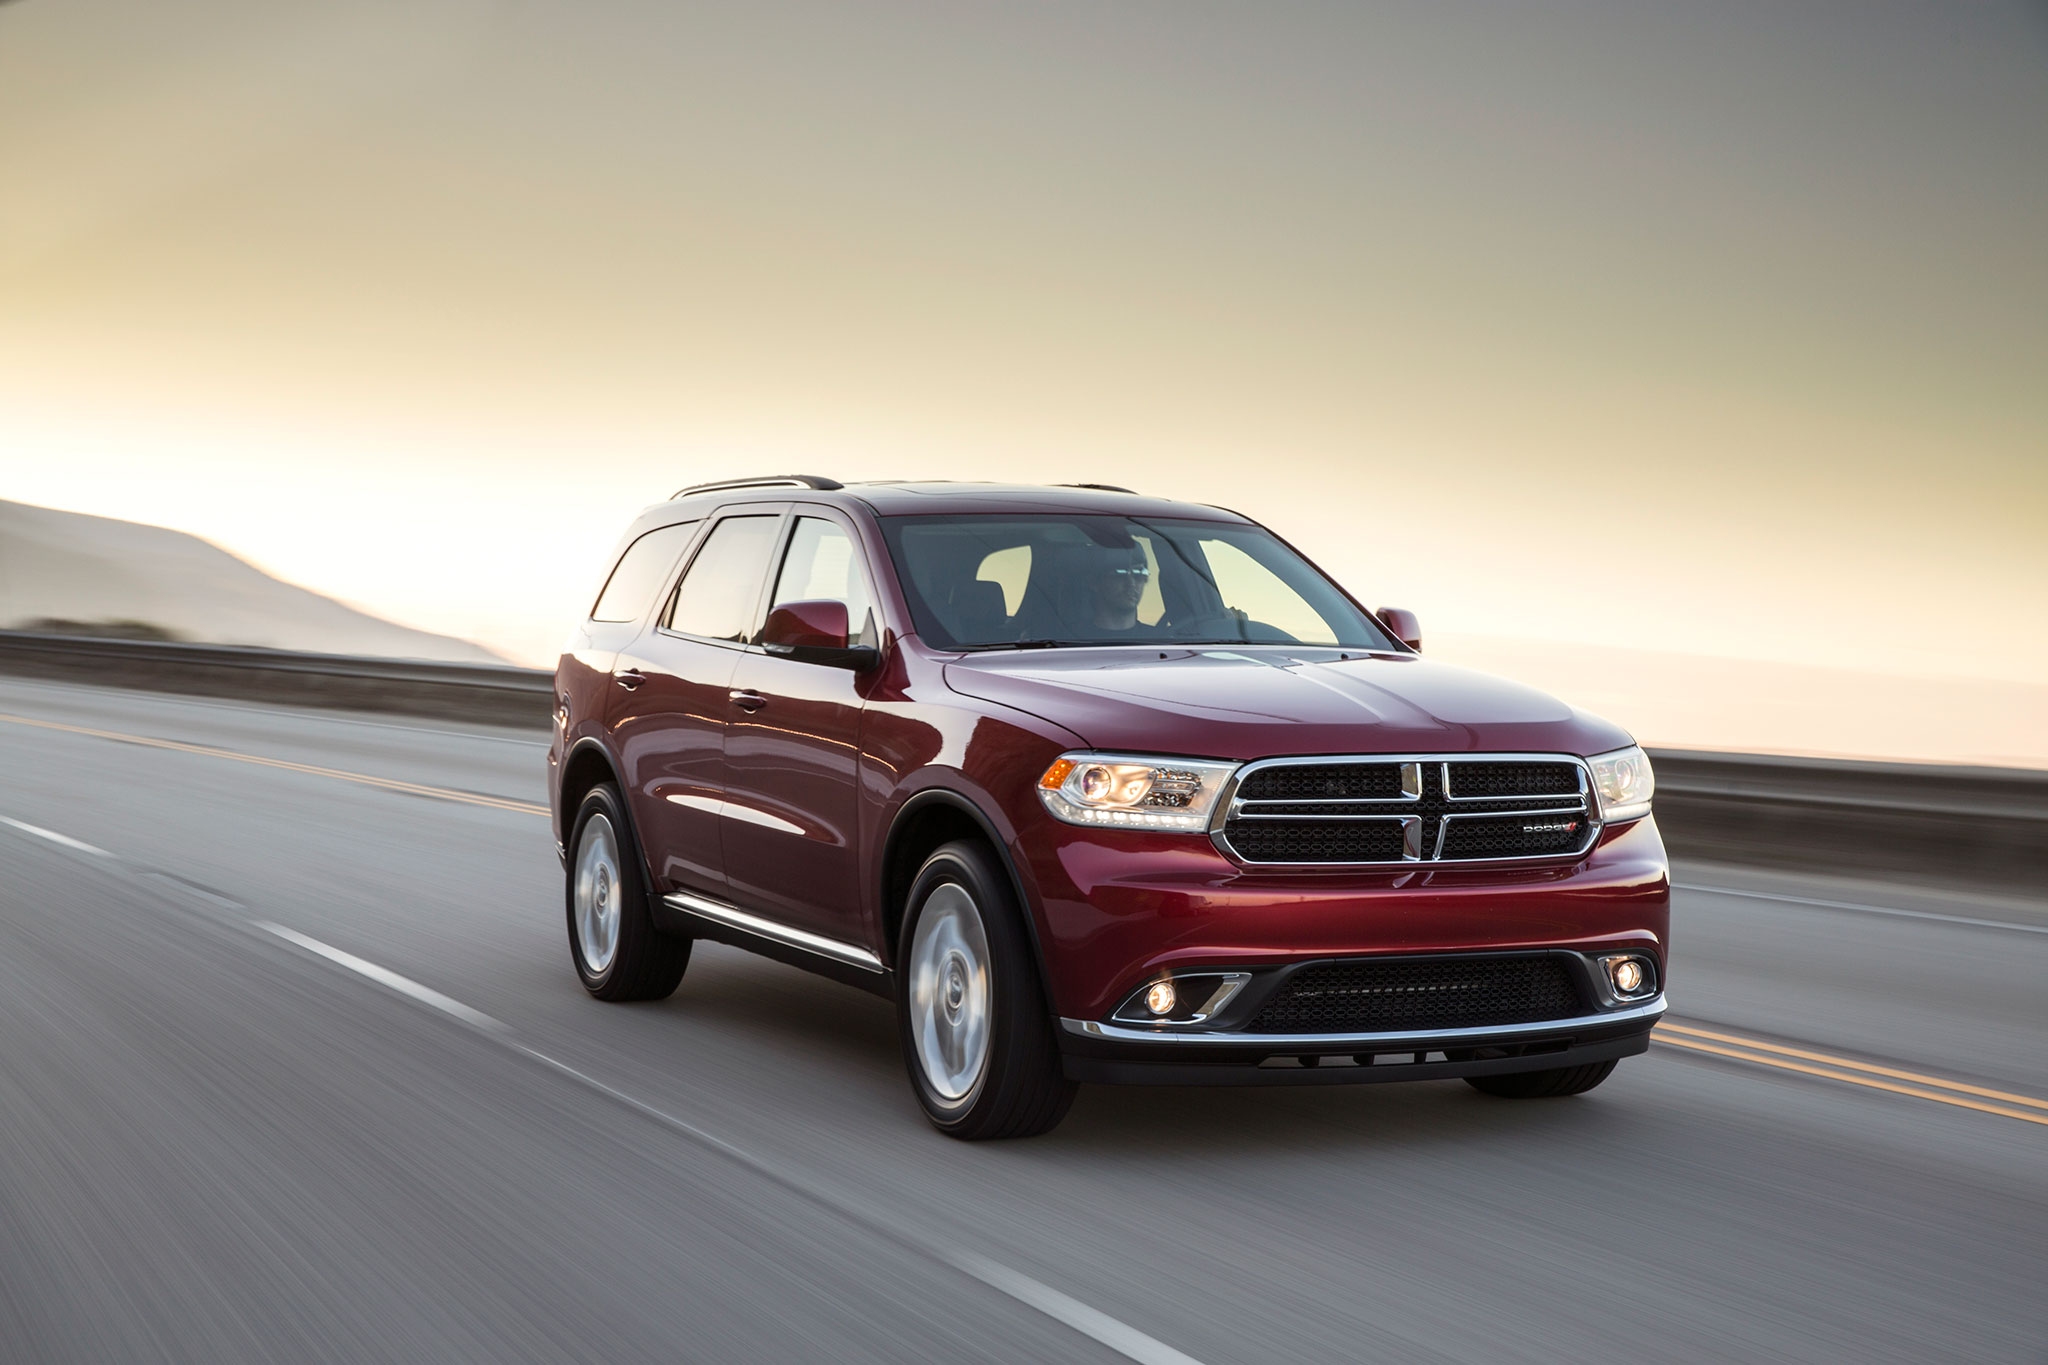 2014 Dodge Durango Limited Passengers Three Quarters In Motion1